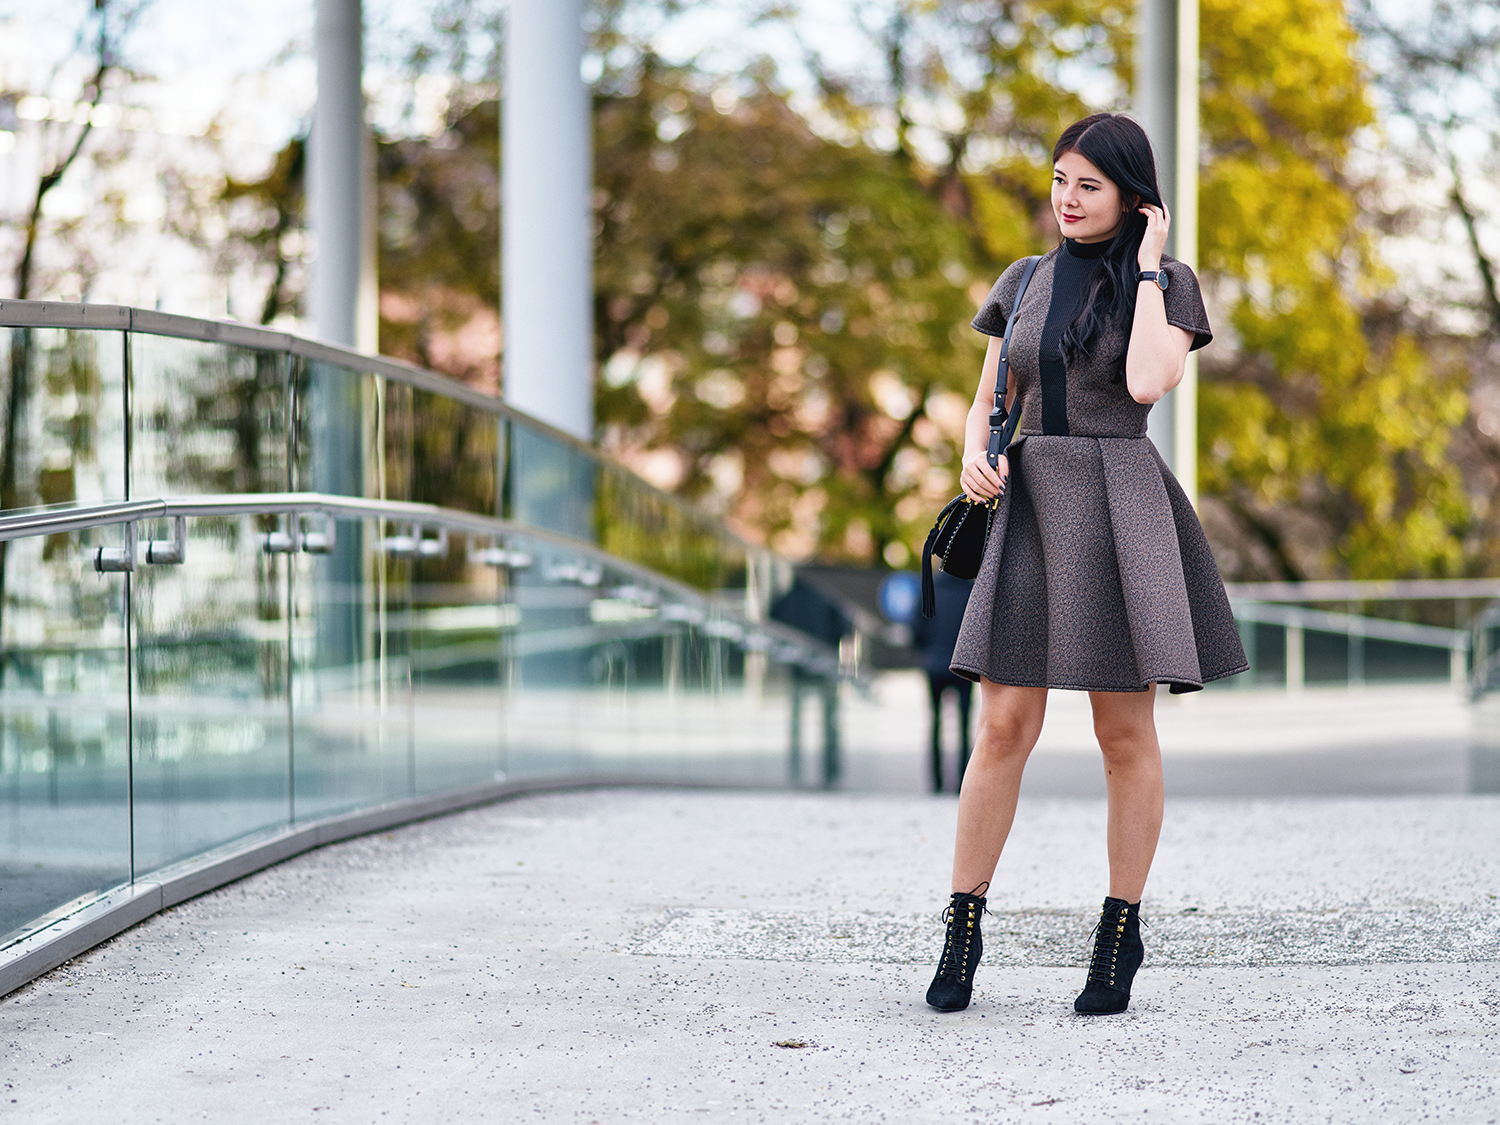 fashionambit-fashionblog-muenchen-modeblog-deutschland-blogger-modeblogger-fashionblogger-bloggerdeutschland-lifestyleblog-munich-style-blog-fashion-silvester-party-outfit